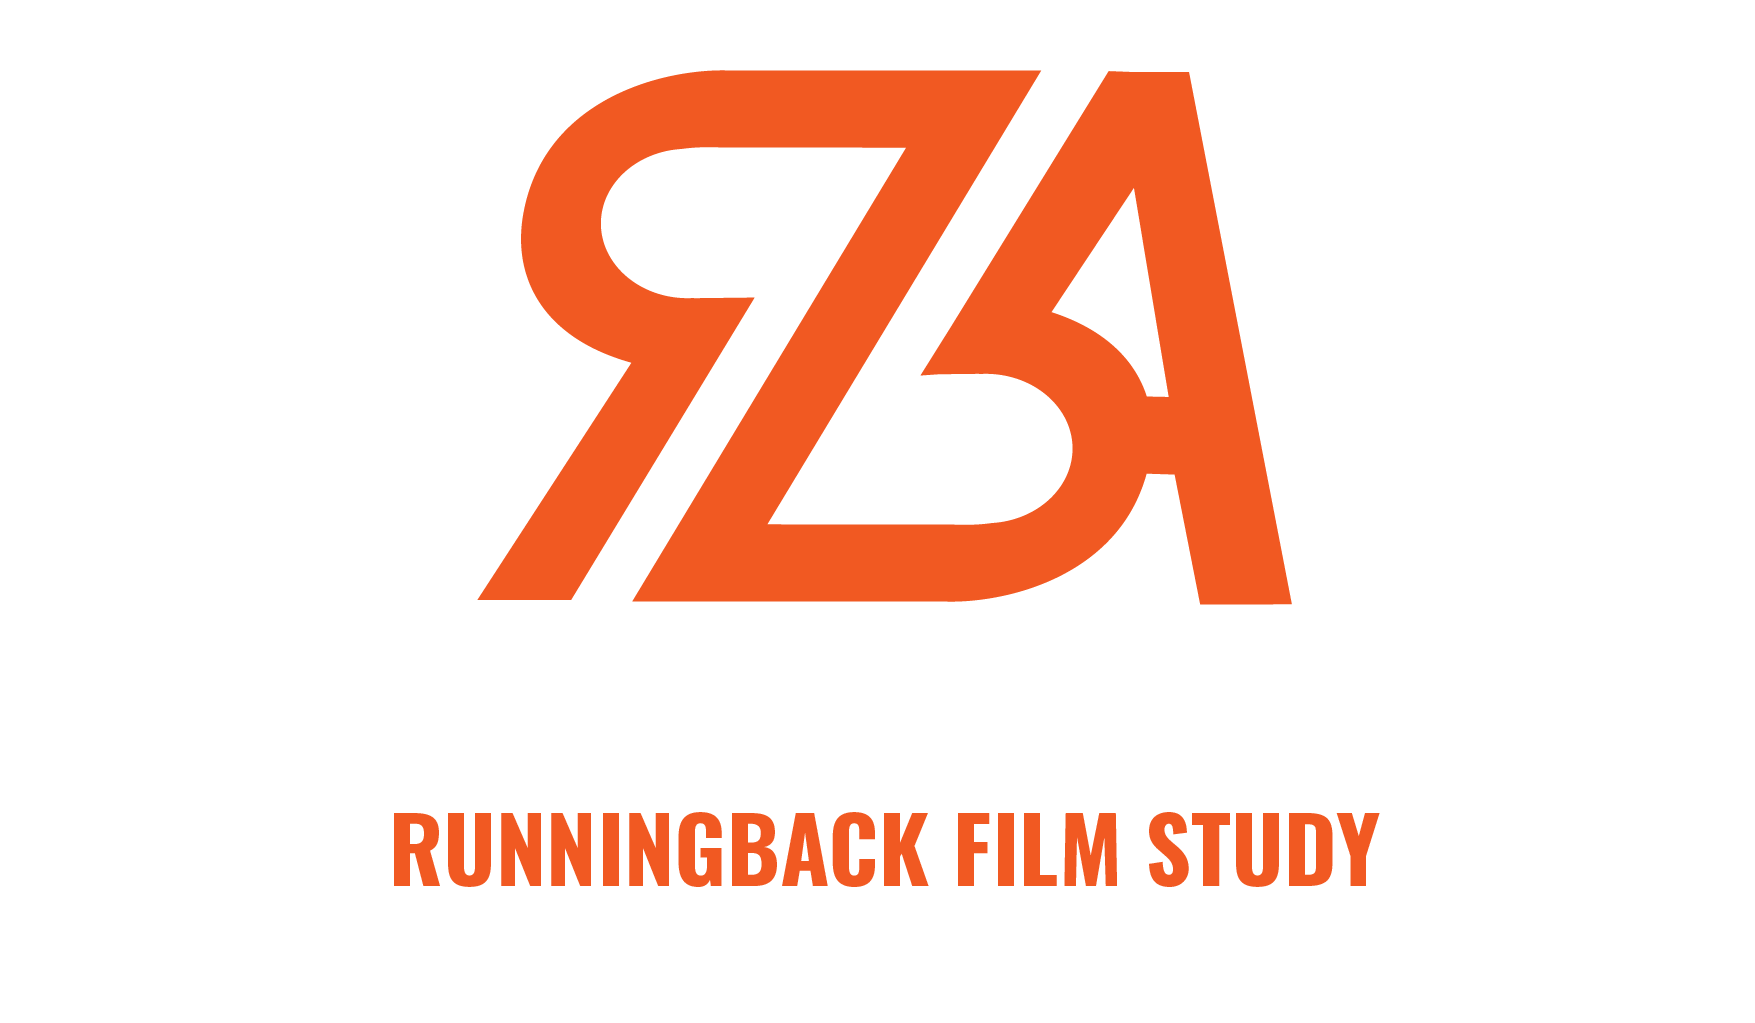 Running_back_academy [Recovered]-06